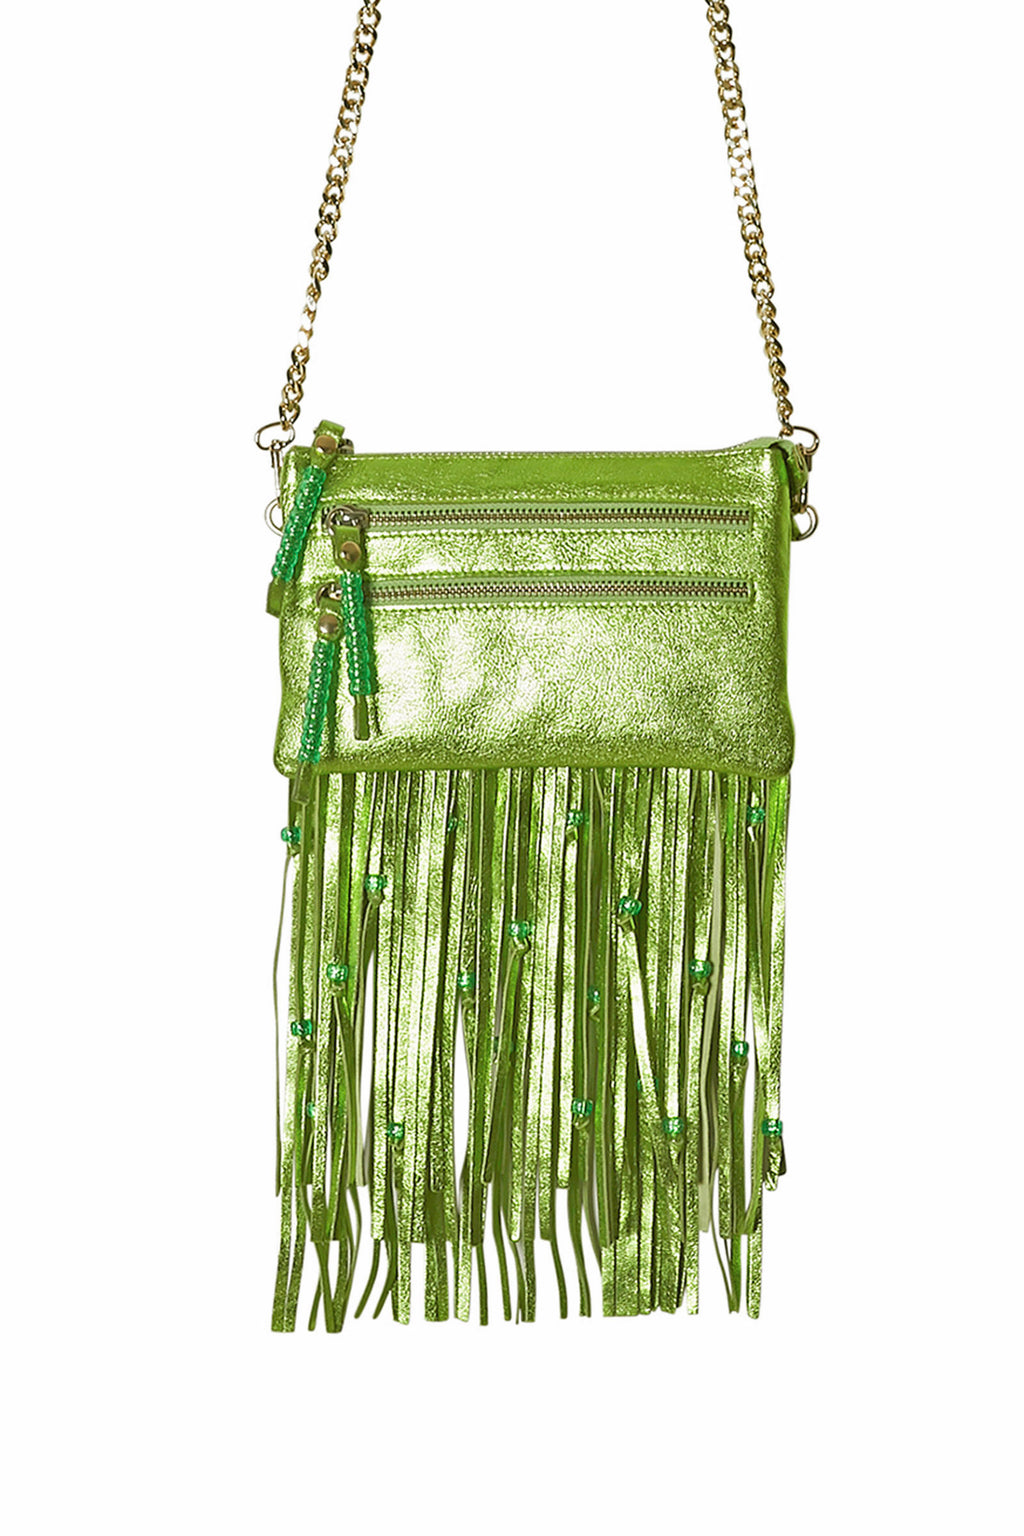 Green Leather Tassels and Zip Puller Set for Tassel Bags